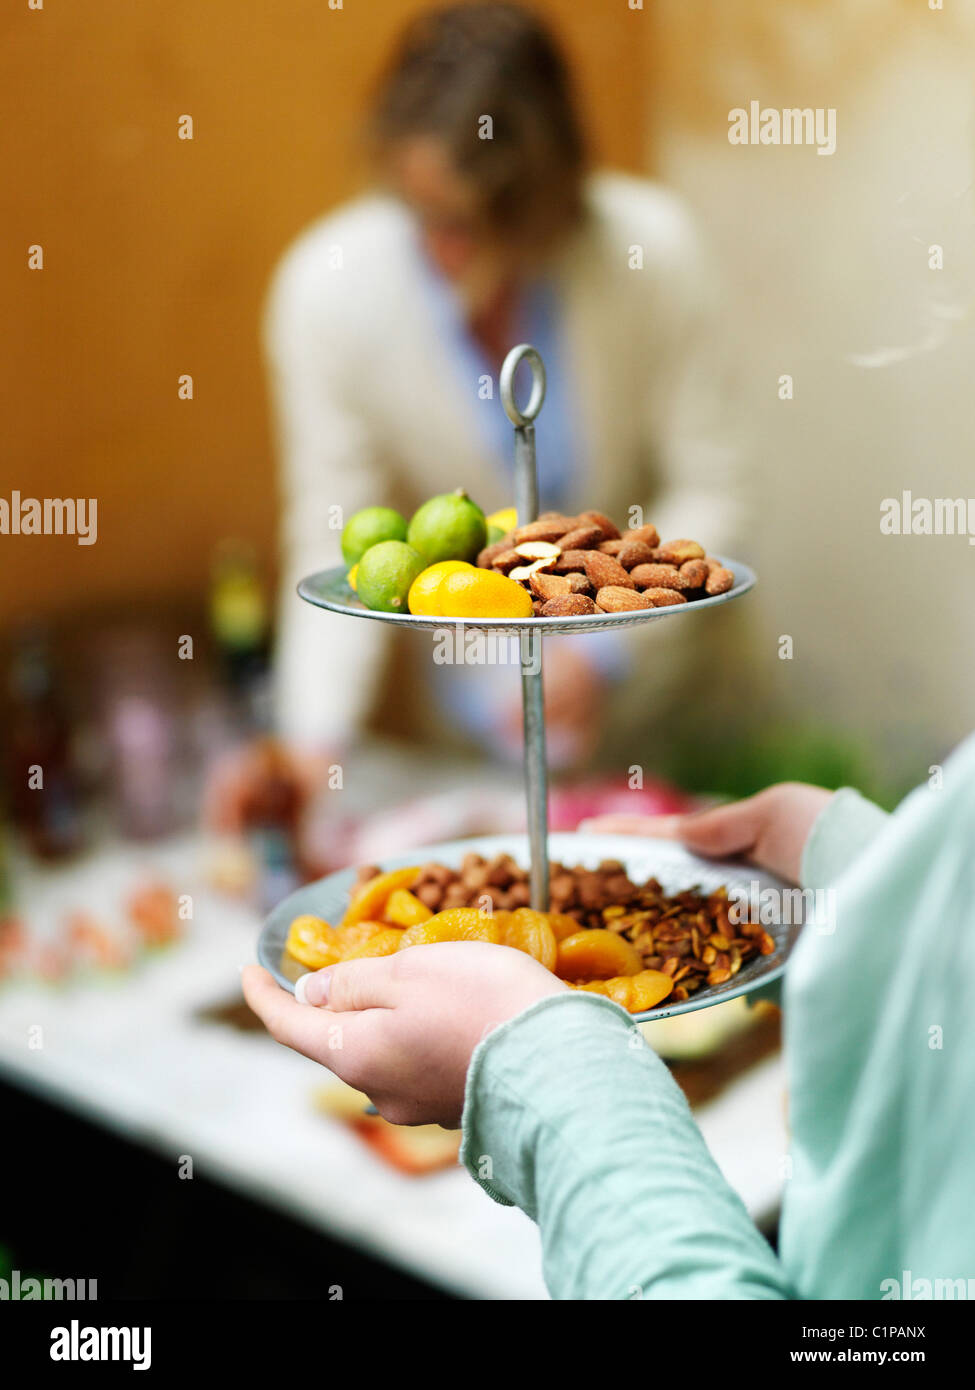 Close up of woman serving fruits and nuts Stock Photo